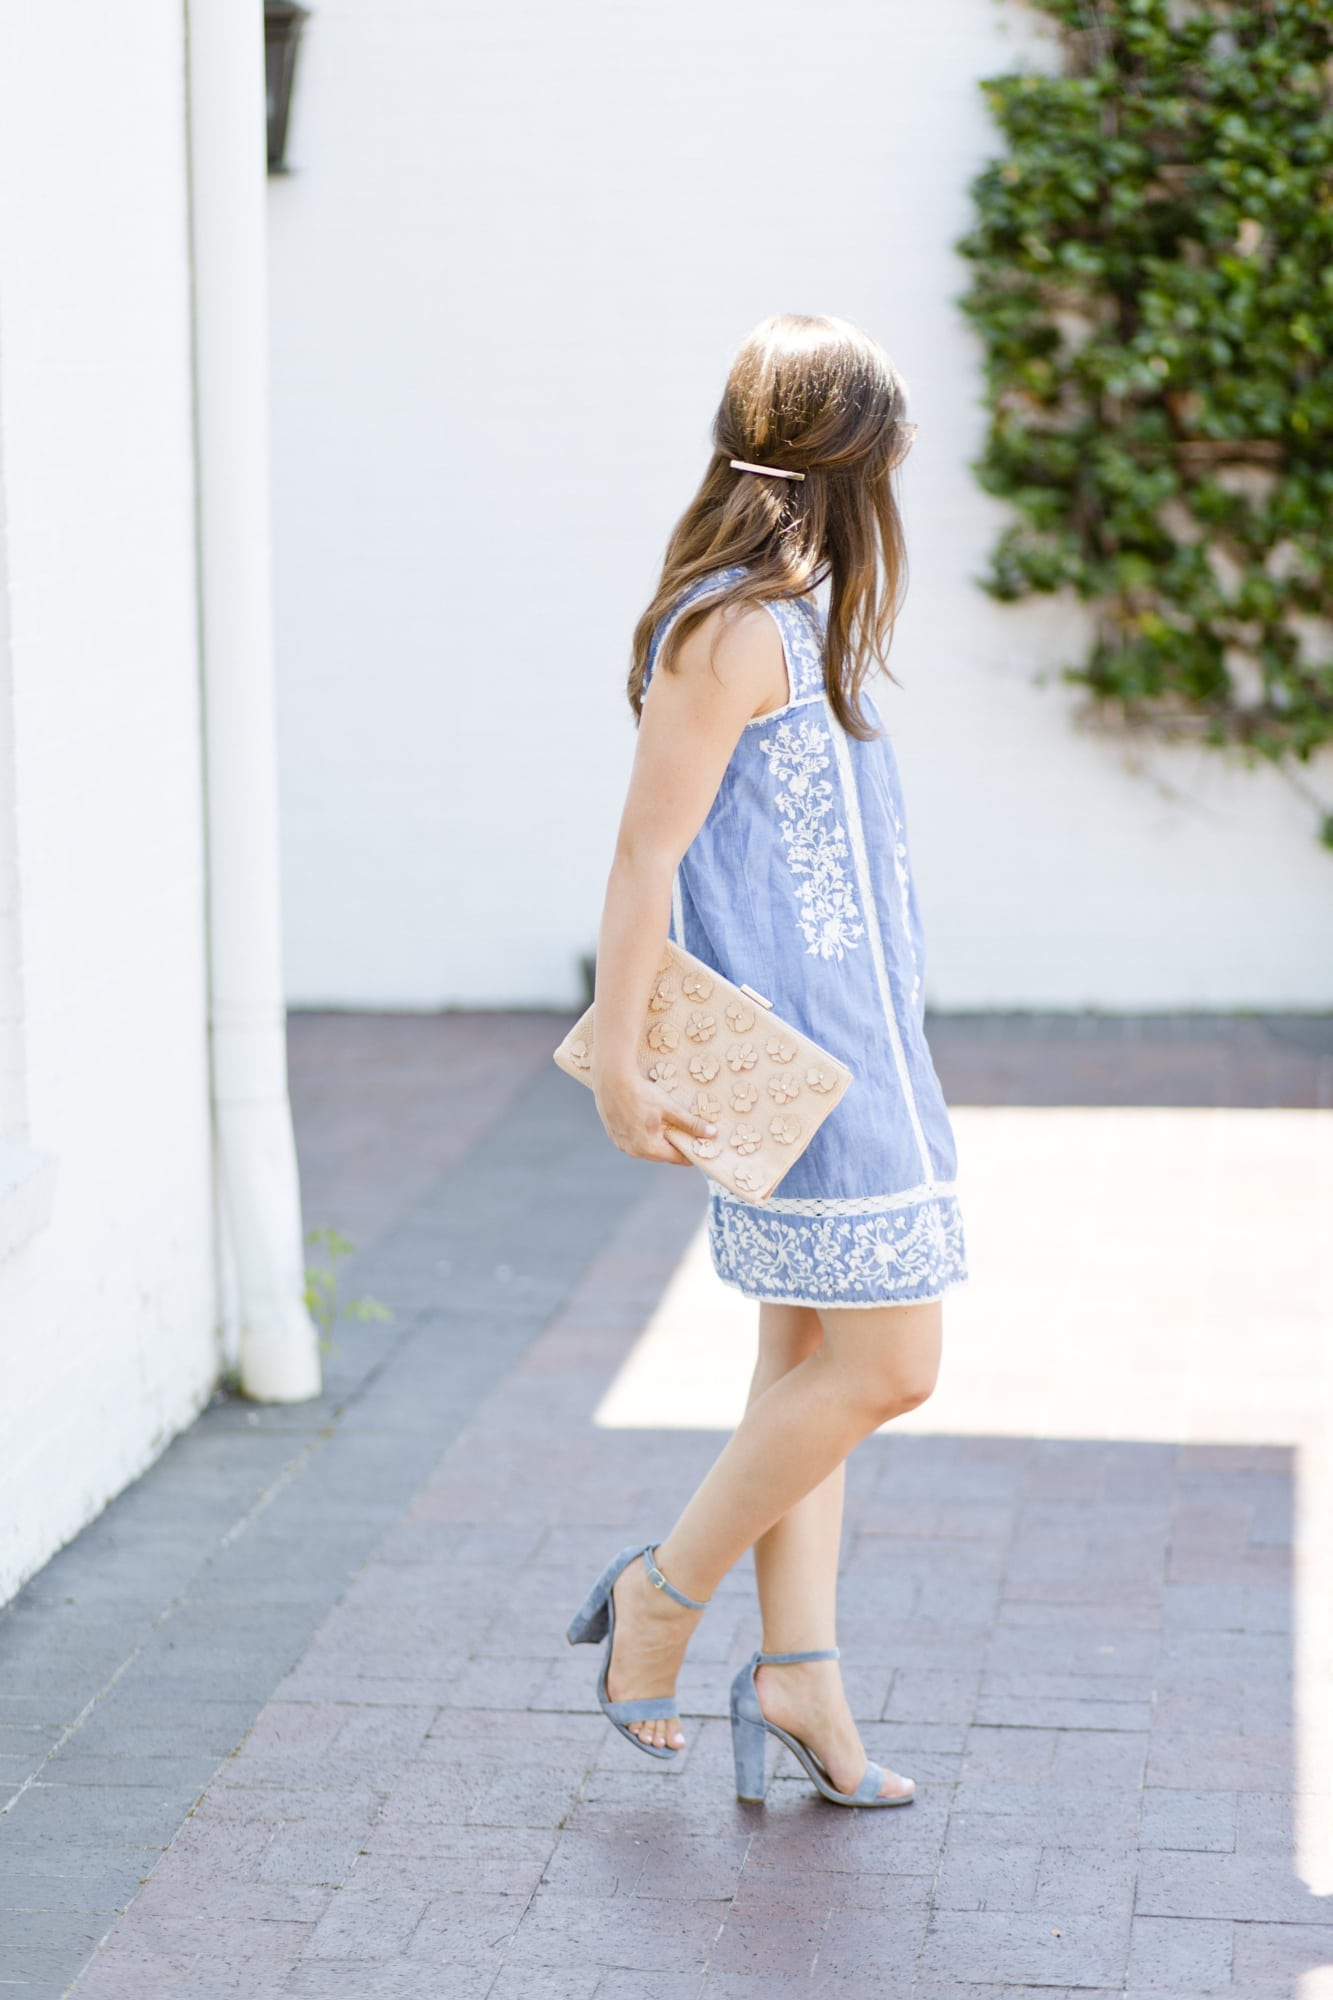 Joie Dress from Rent the Runway